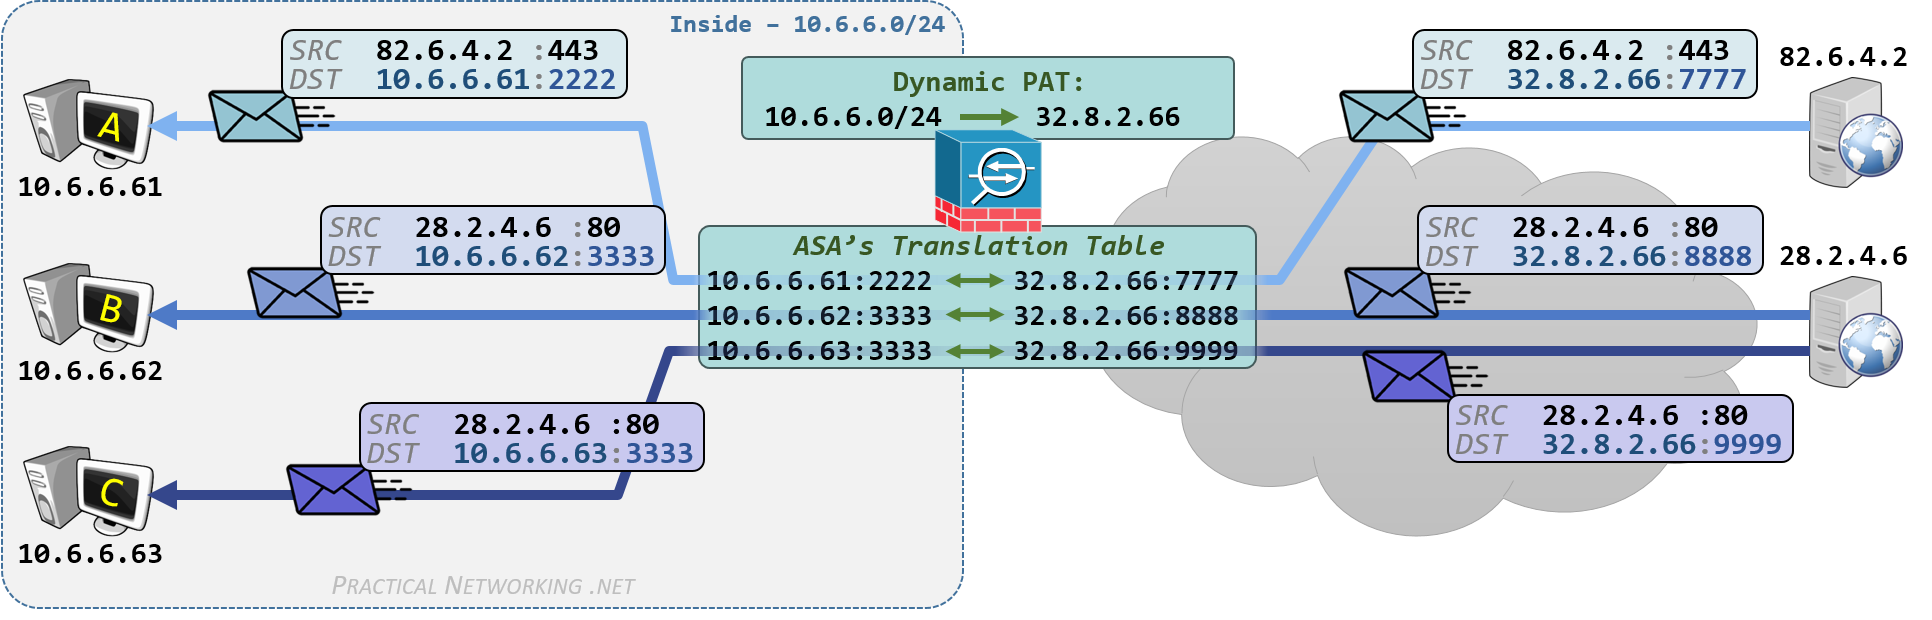 Cisco ASA NAT - Configuring Dynamic PAT with Auto NAT and Manual NAT - Inbound